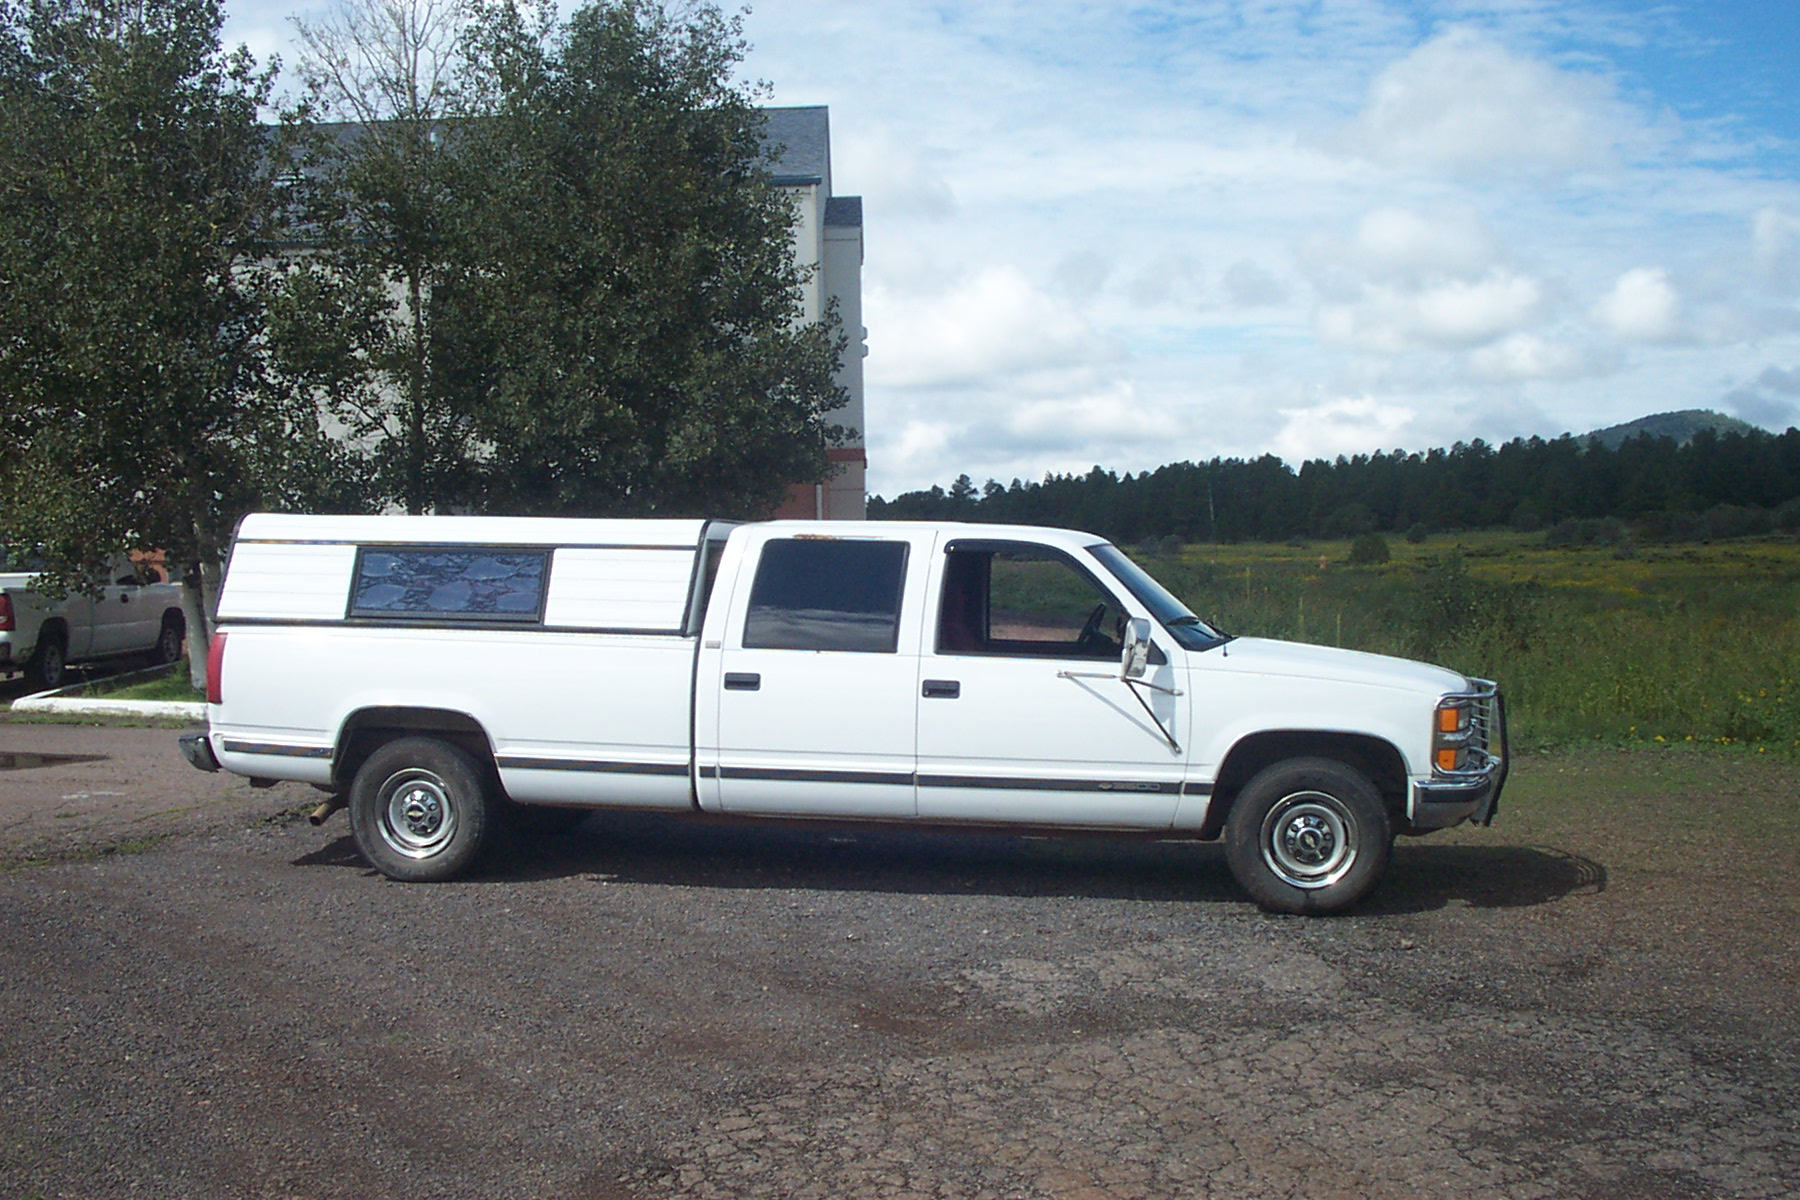 Flagstaff Buick Gmc >> Thoughts on 1996 Chevy 3500 Crewcab 454 2wd (2015, camper ...